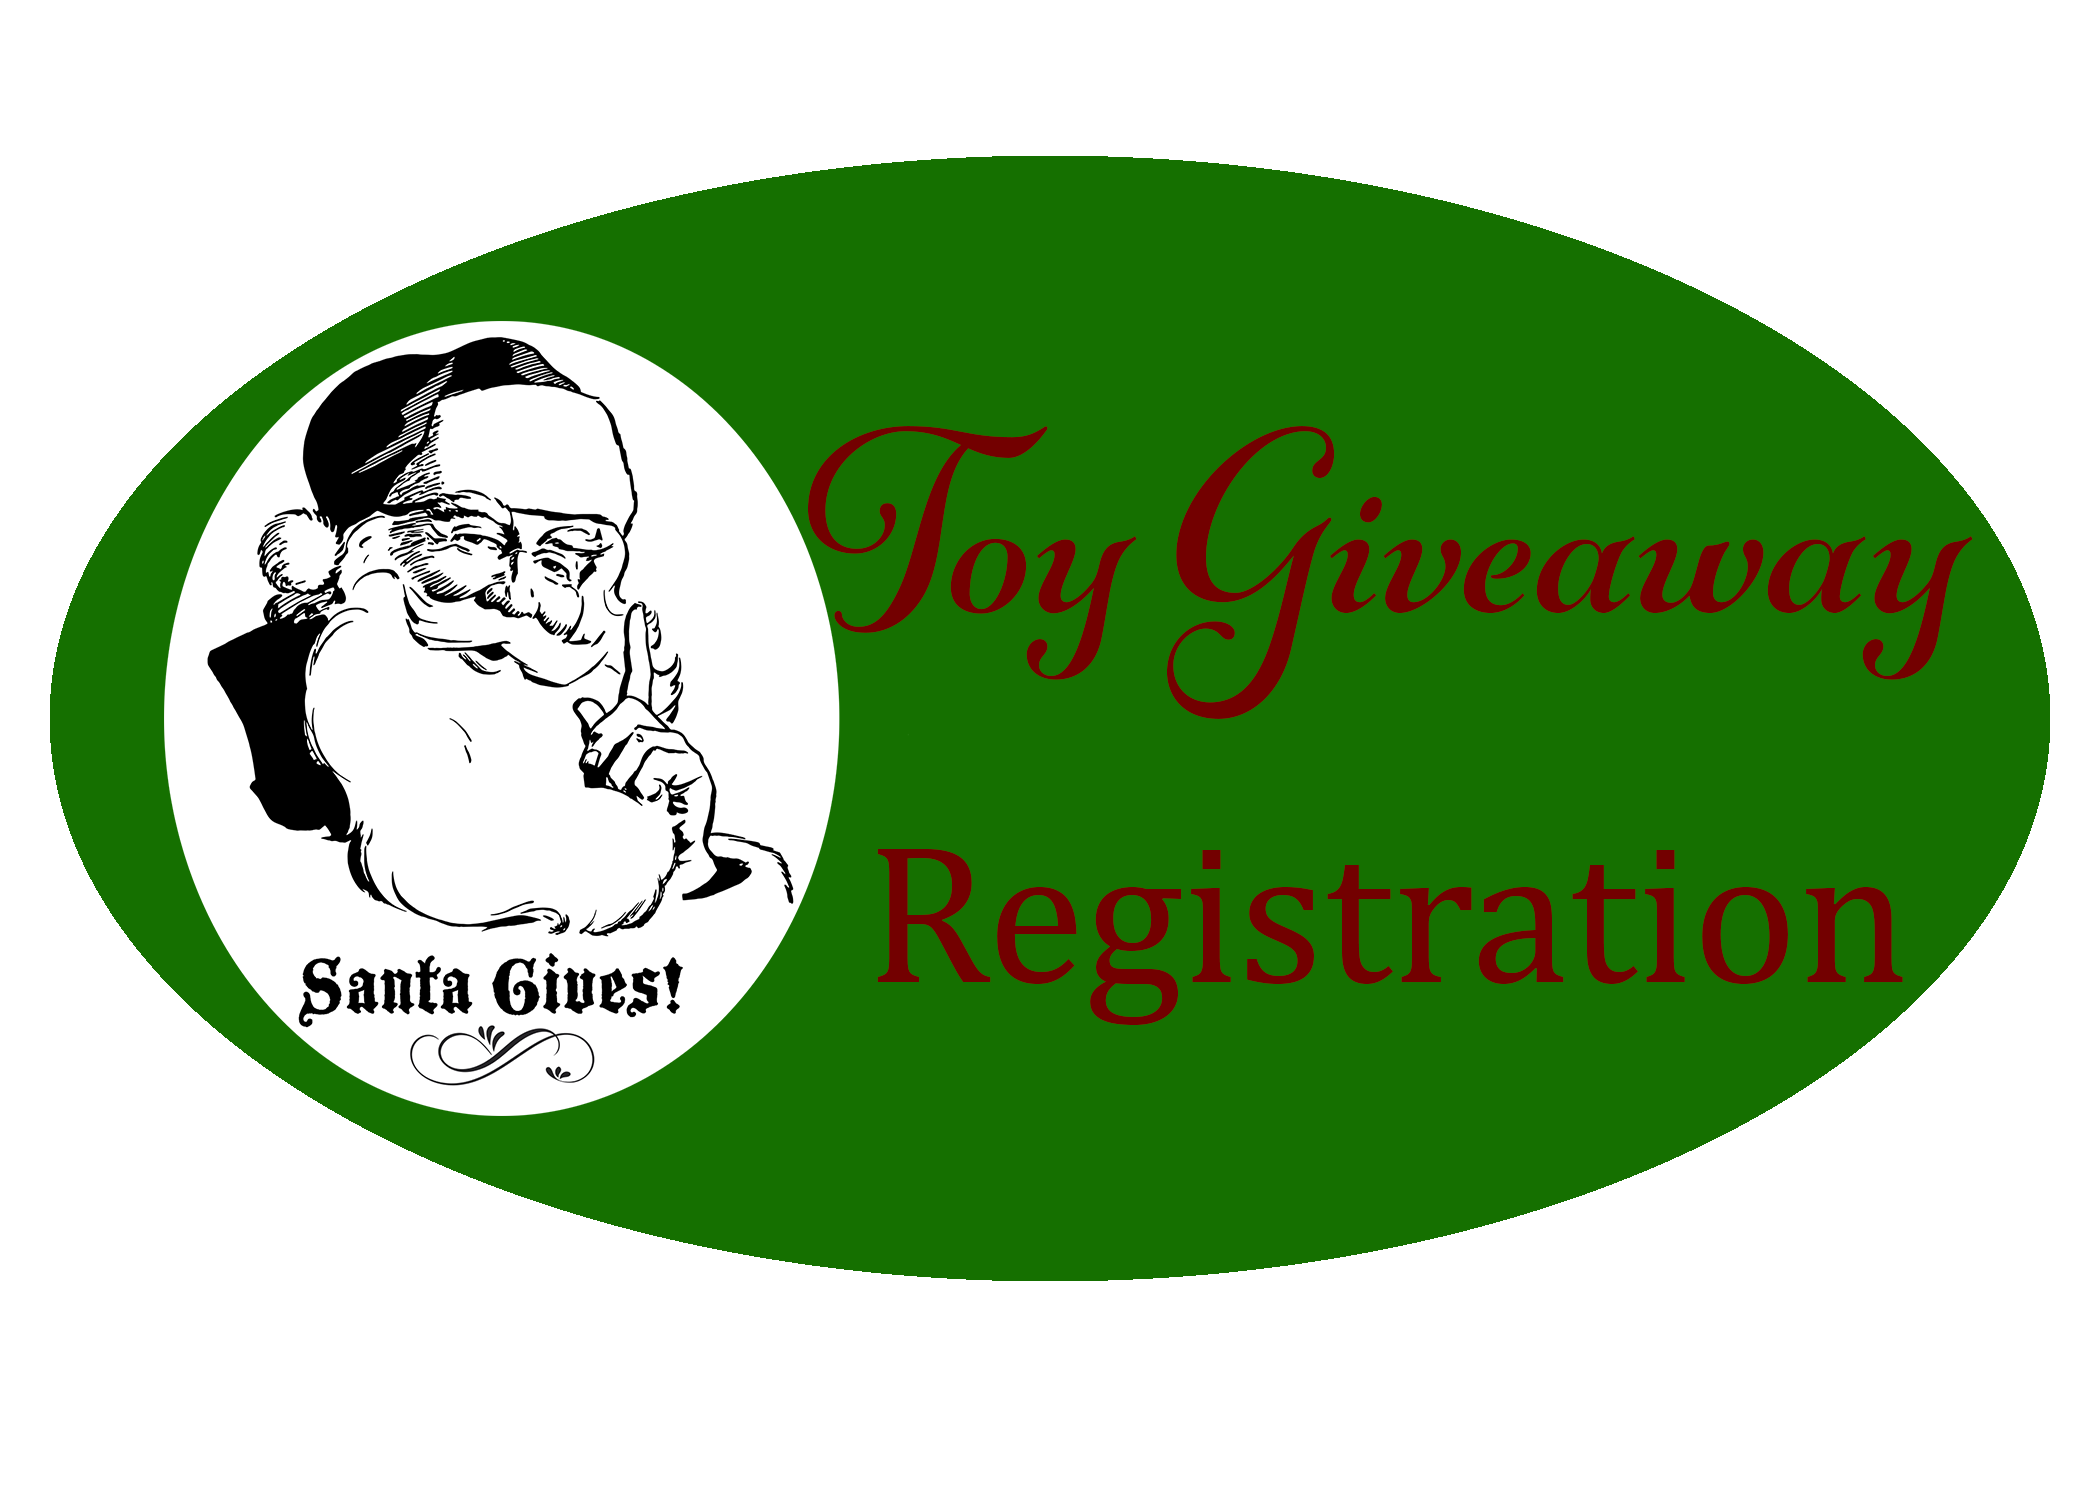 Christmas Toy Giveaway Registration